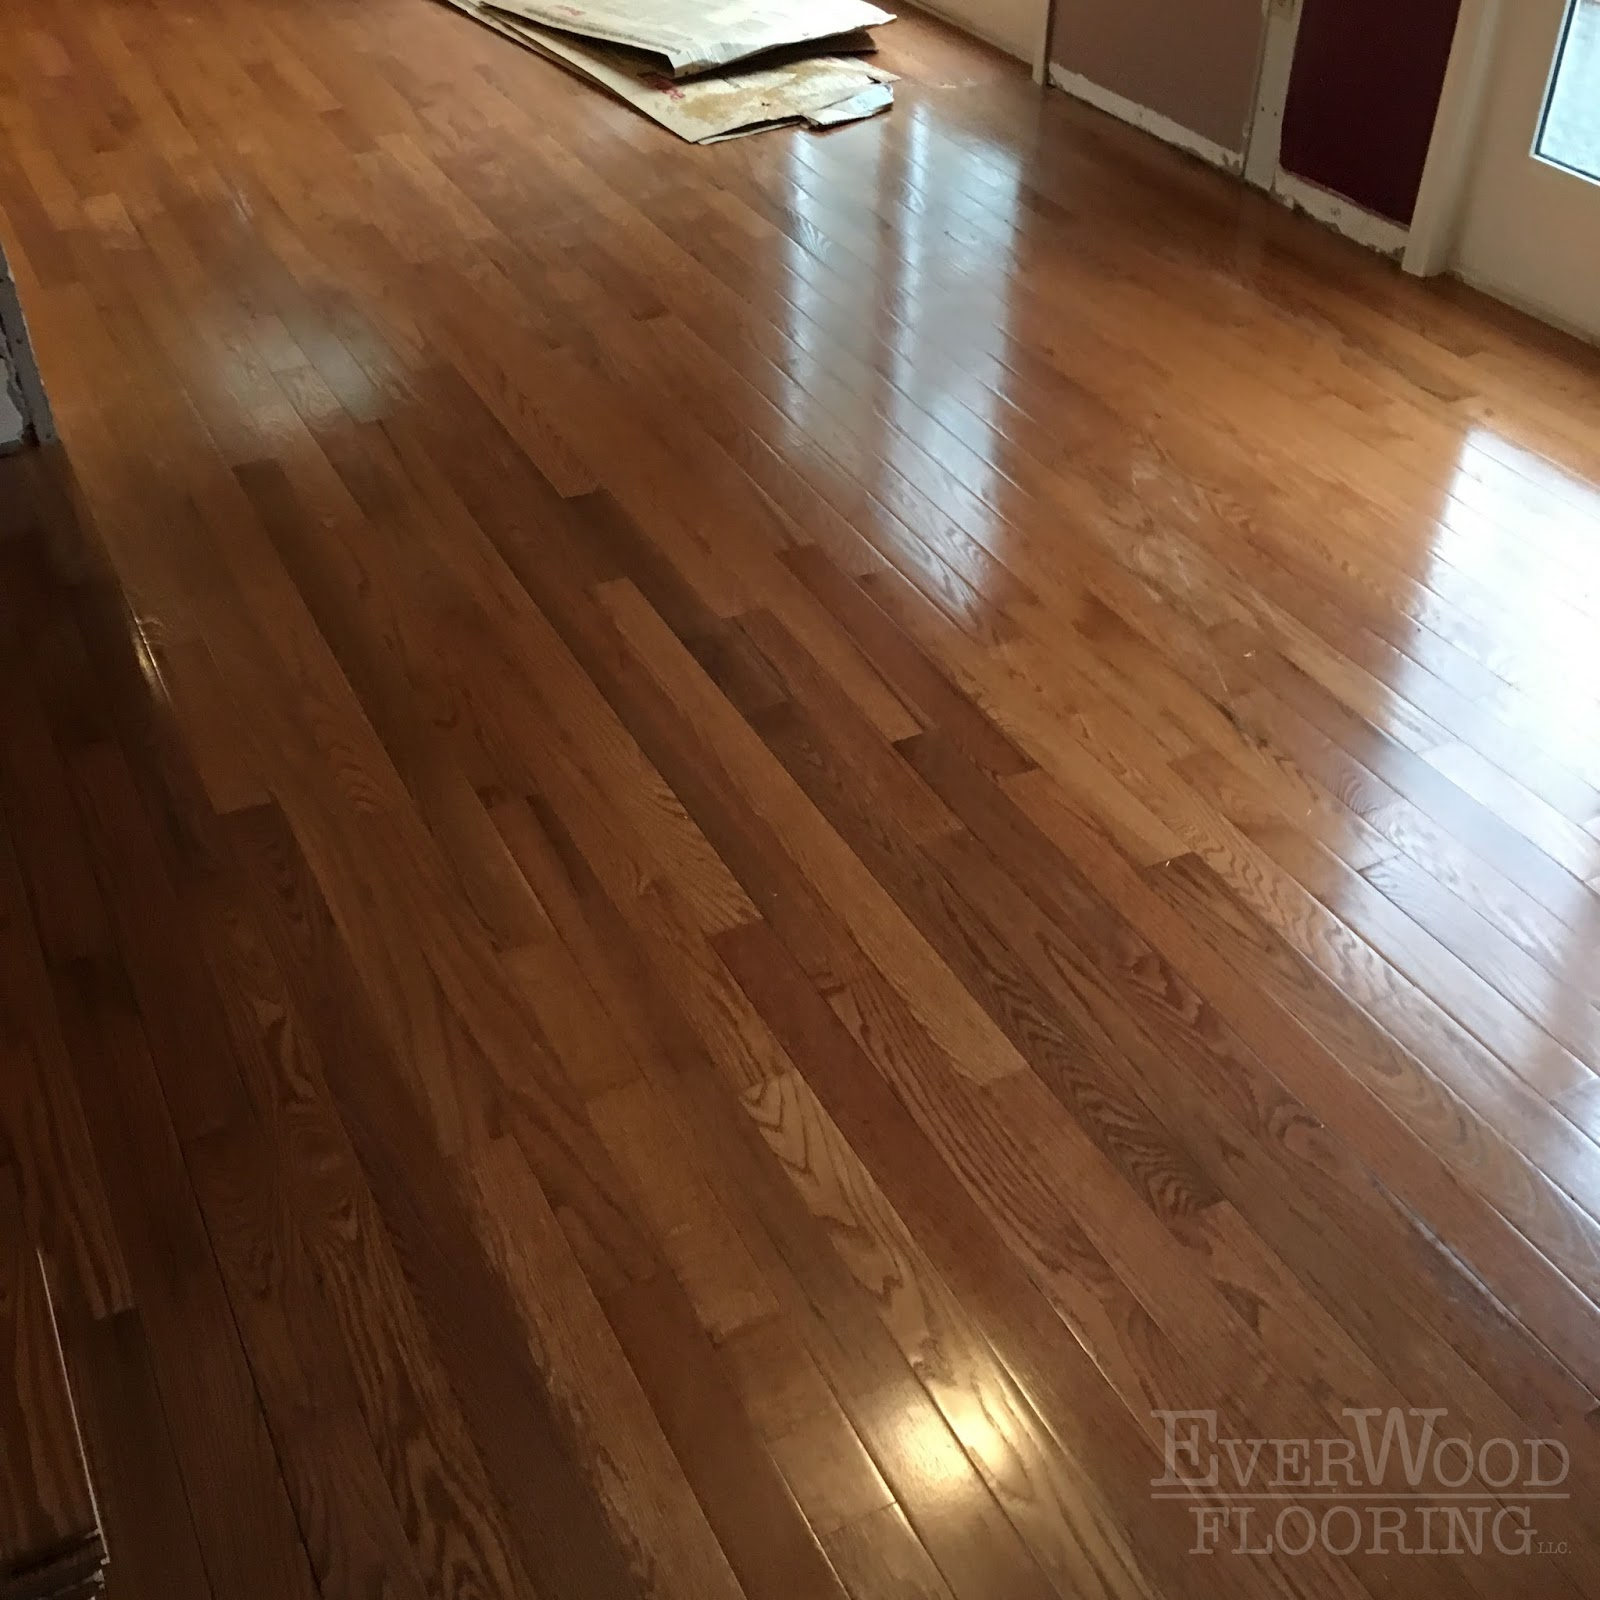 Everwood Flooring Project Profiles Ripout And Install Prefinished